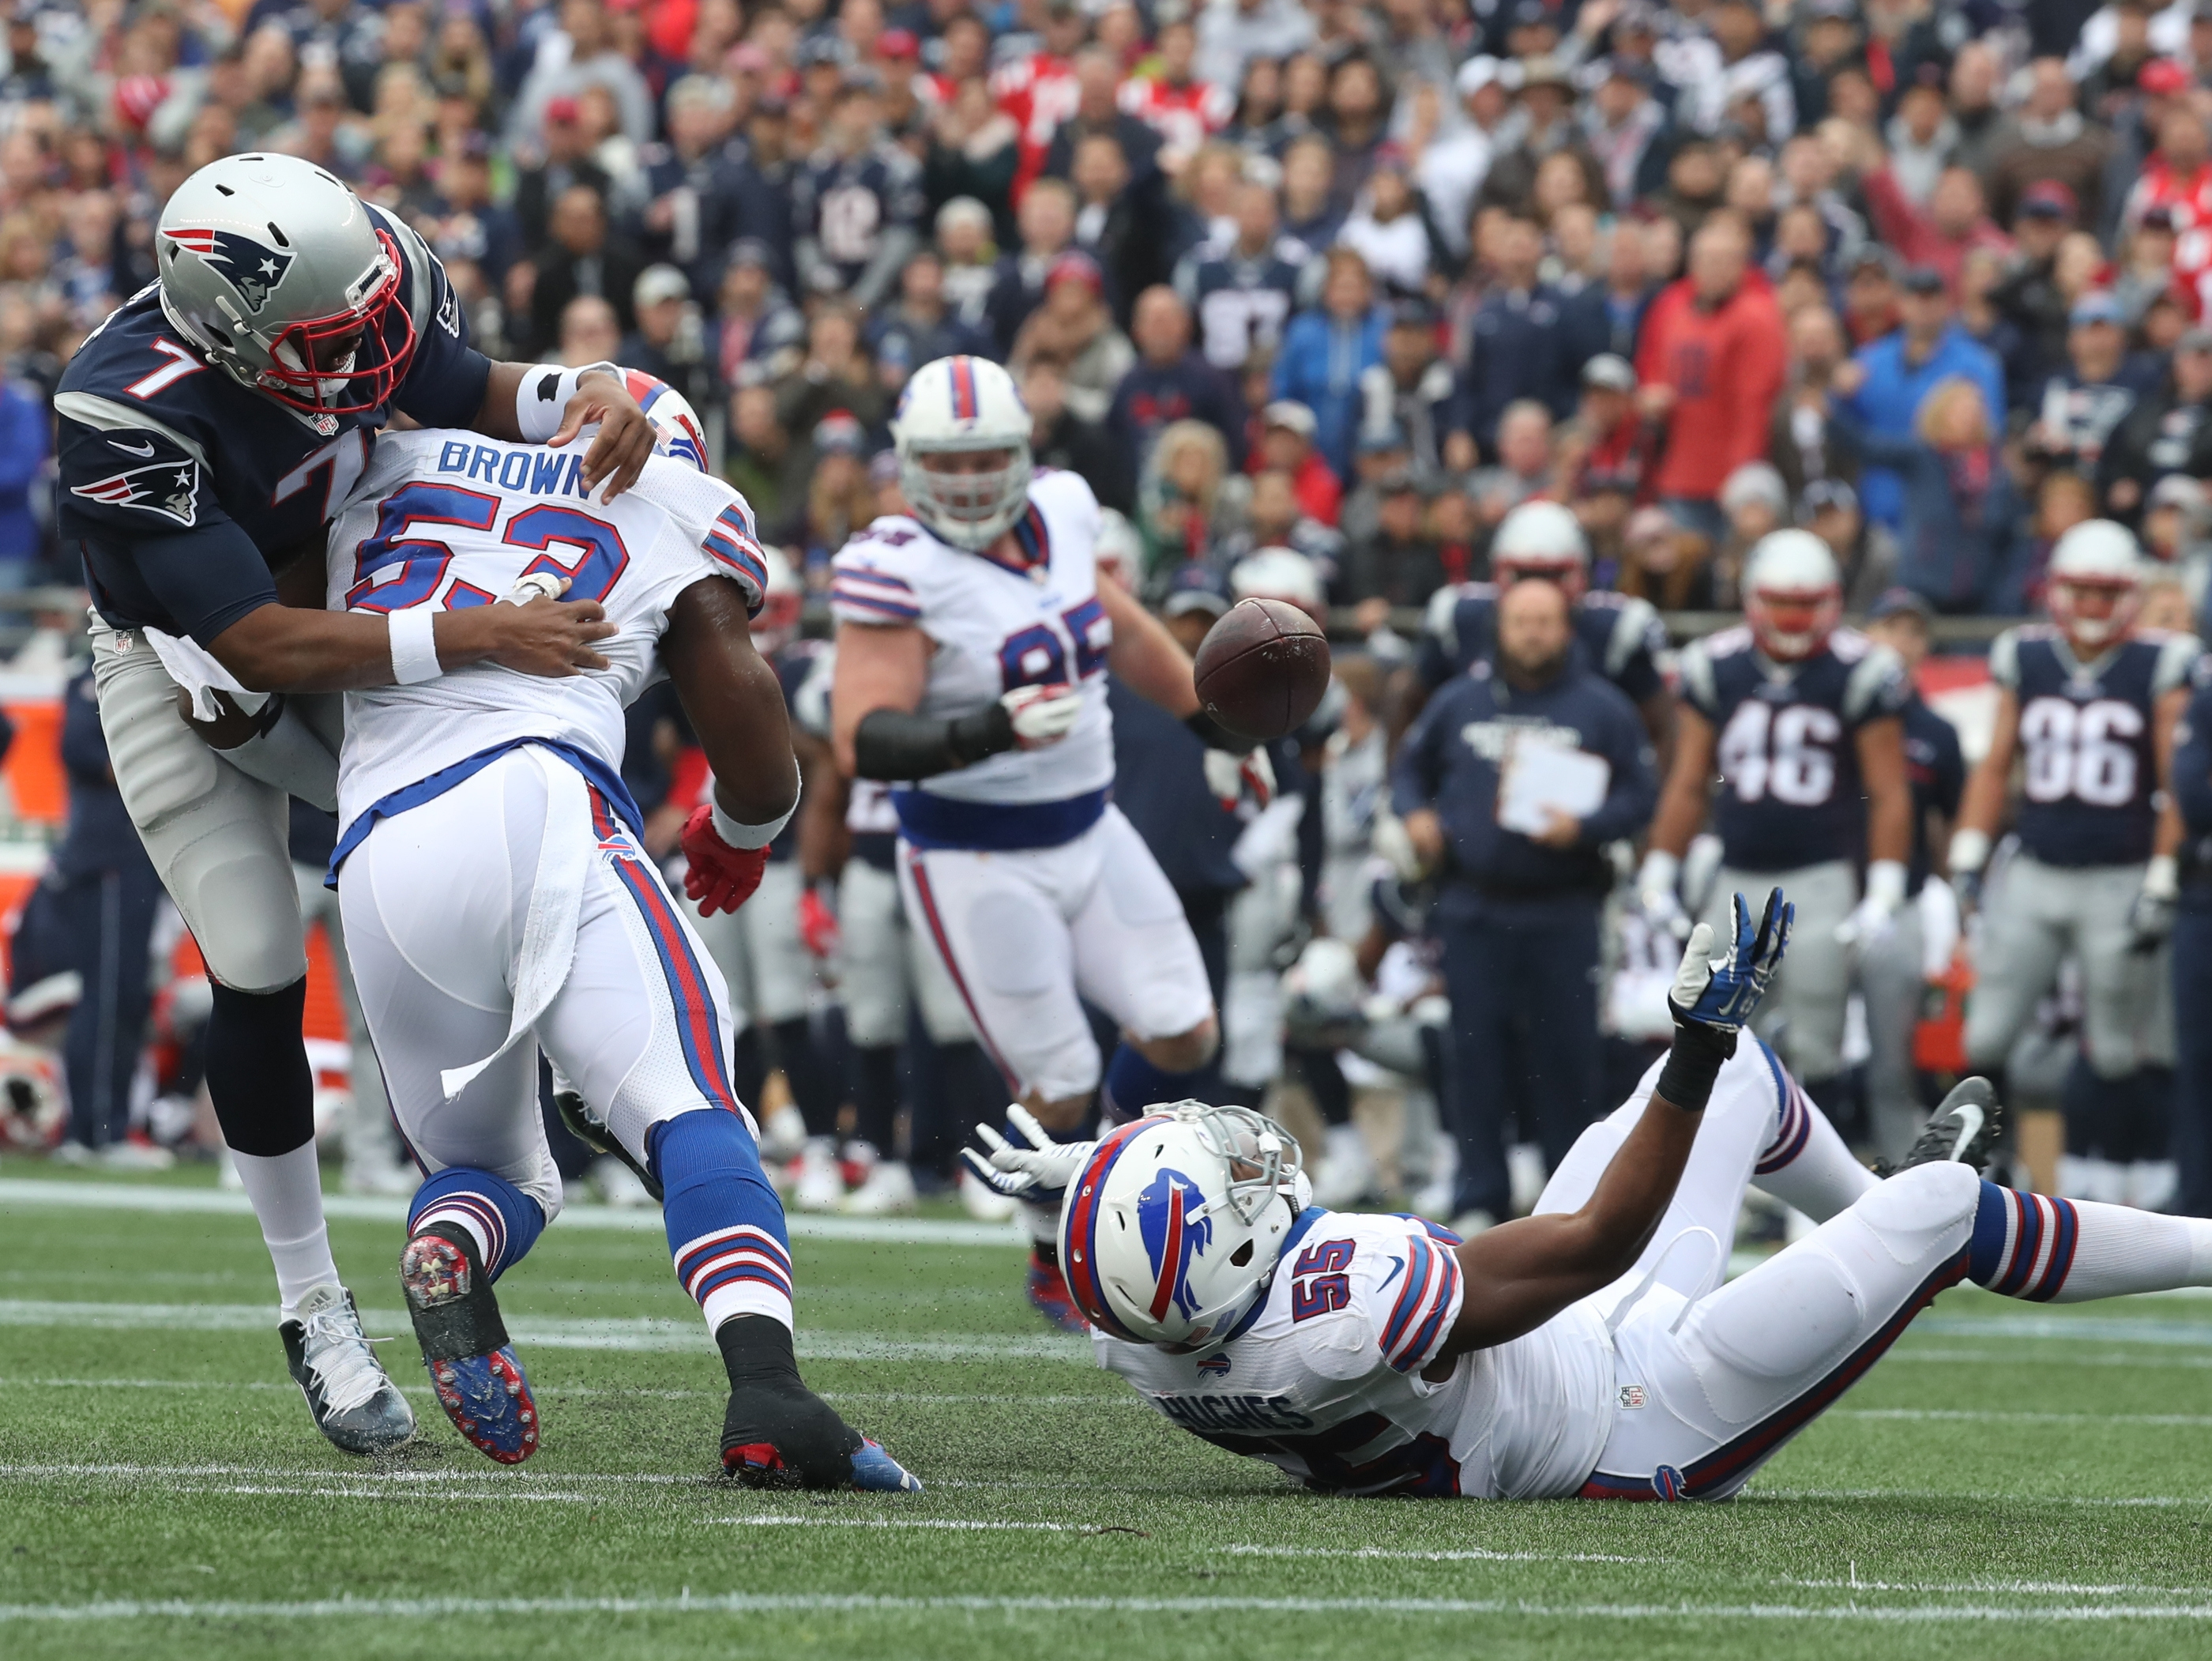 Buffalo Bills inside linebacker Zach Brown, signed as a free agent by Doug Whaley, had a tremendous game against the Patriots, including this forced fumble.